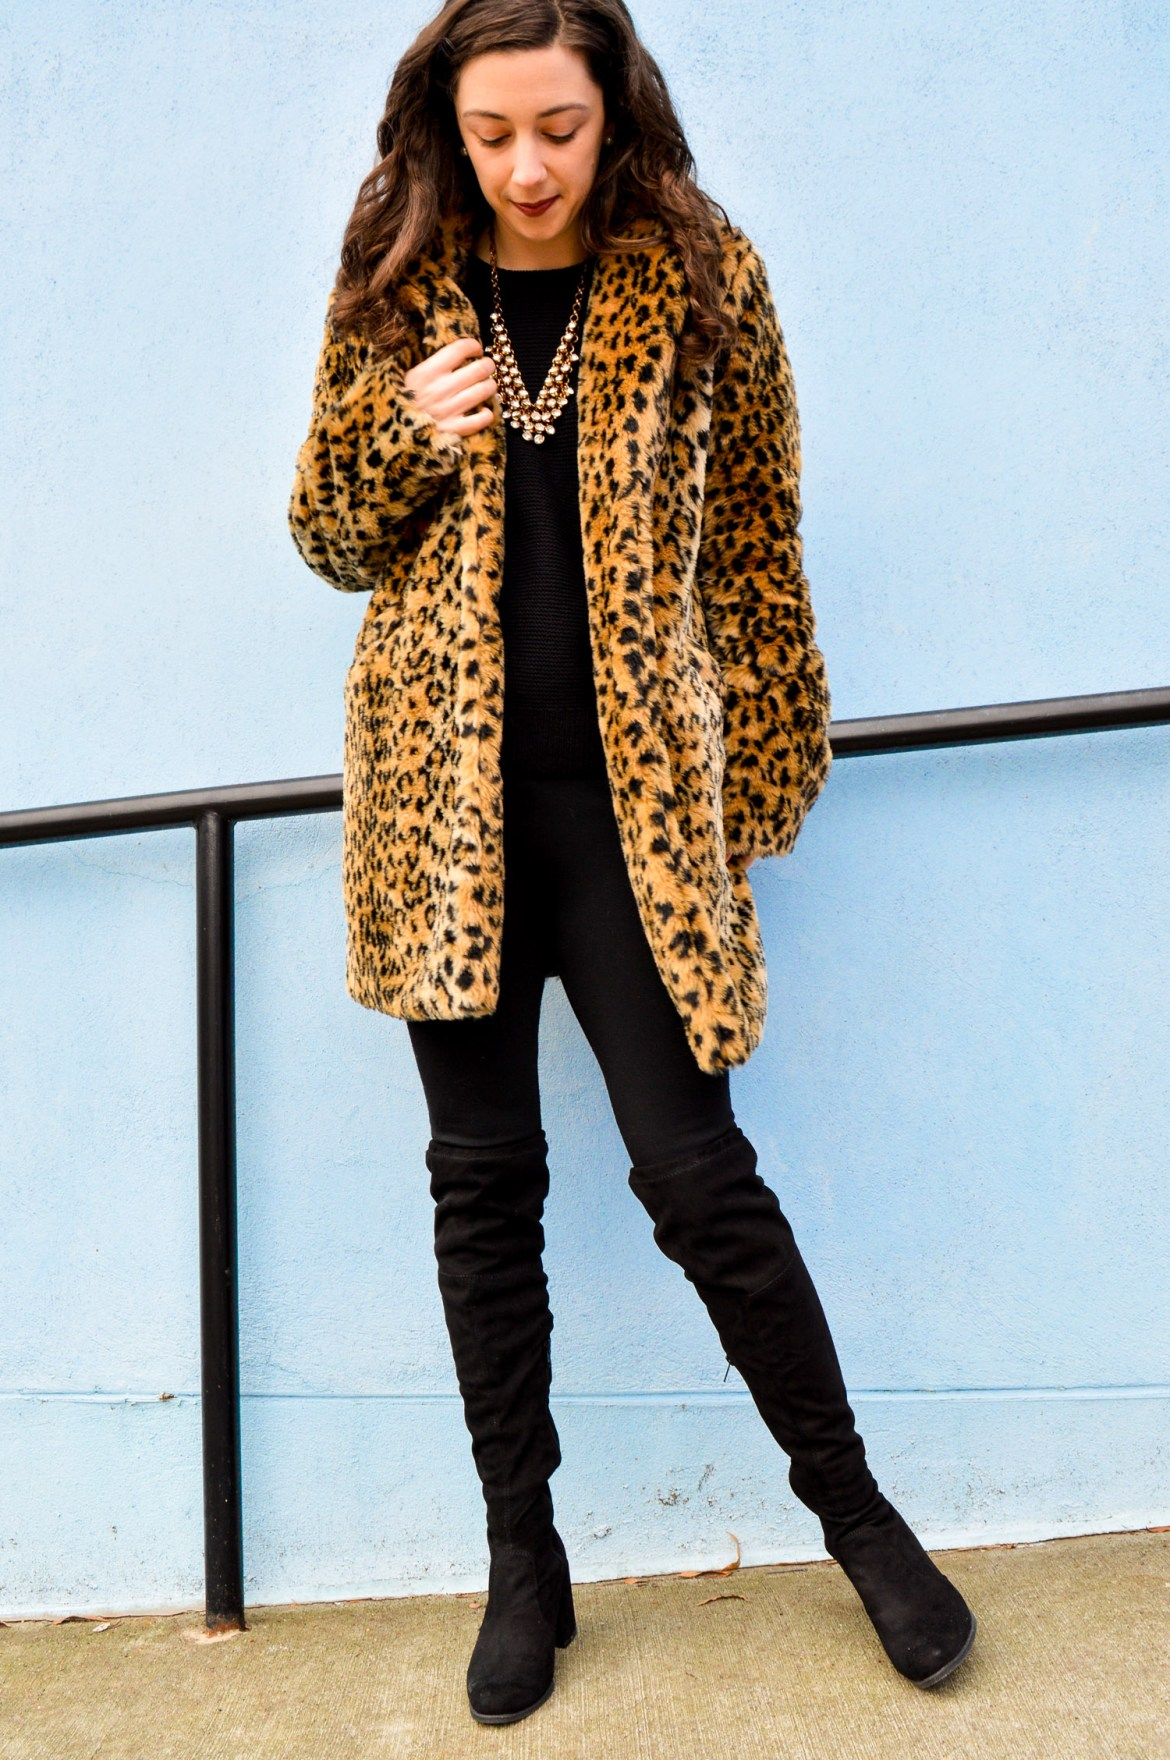 Target Style // A New Day Leopard Print Coat